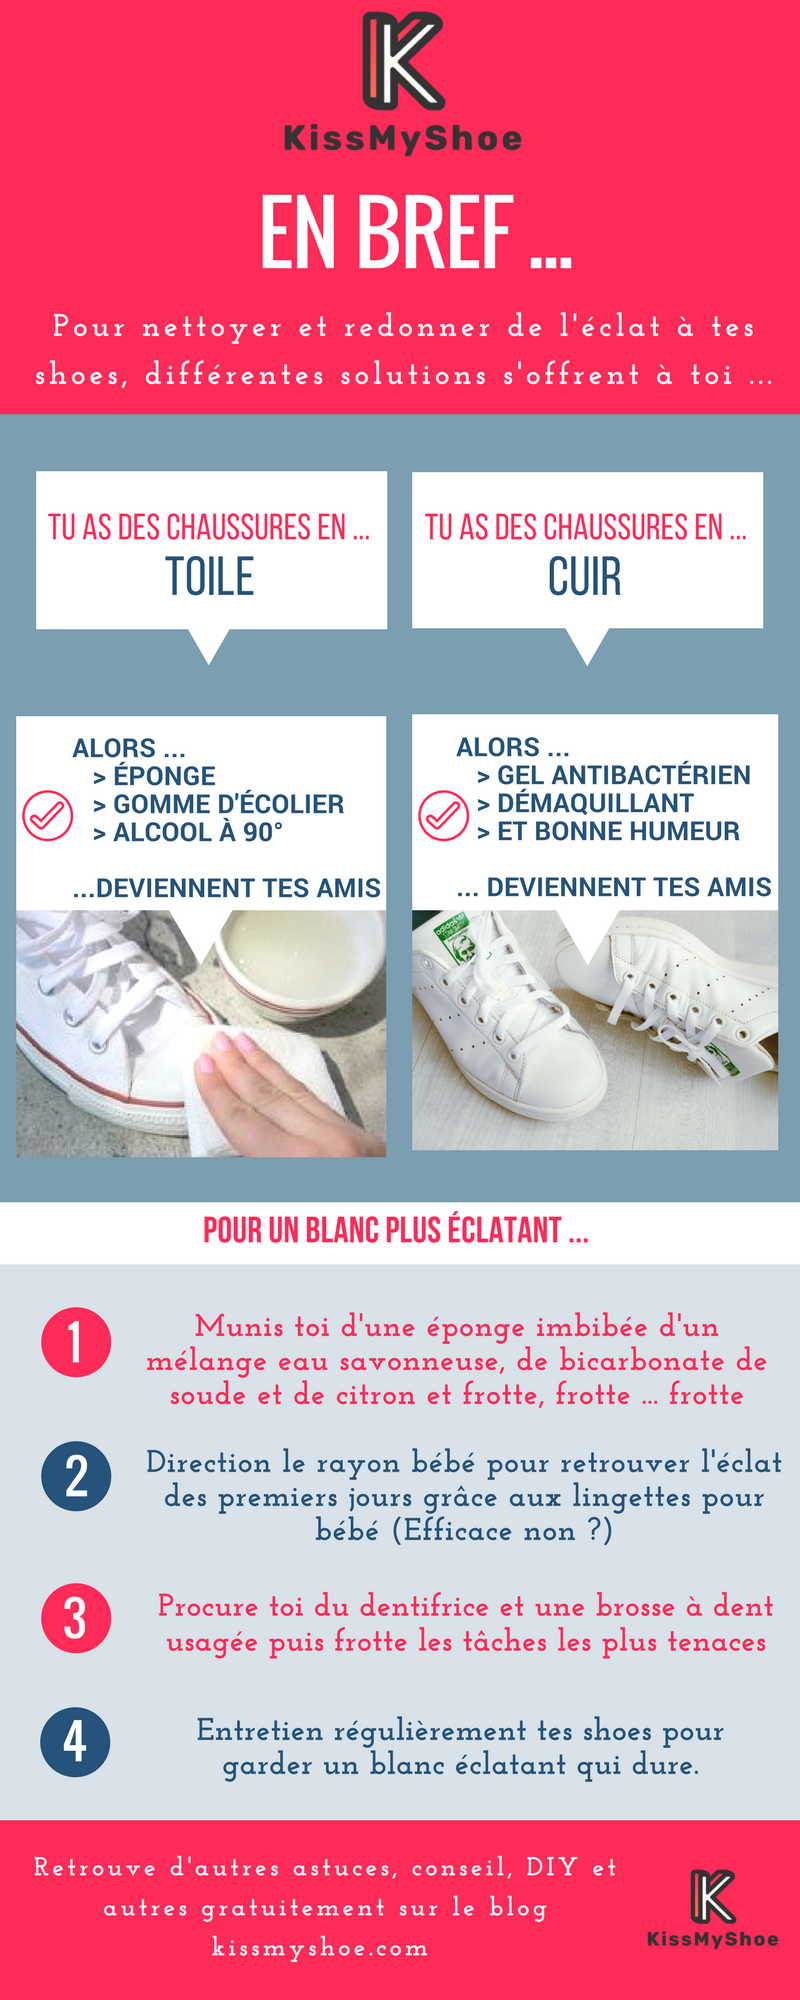 En bref, voici comment nettoyer vos chaussures blanches.